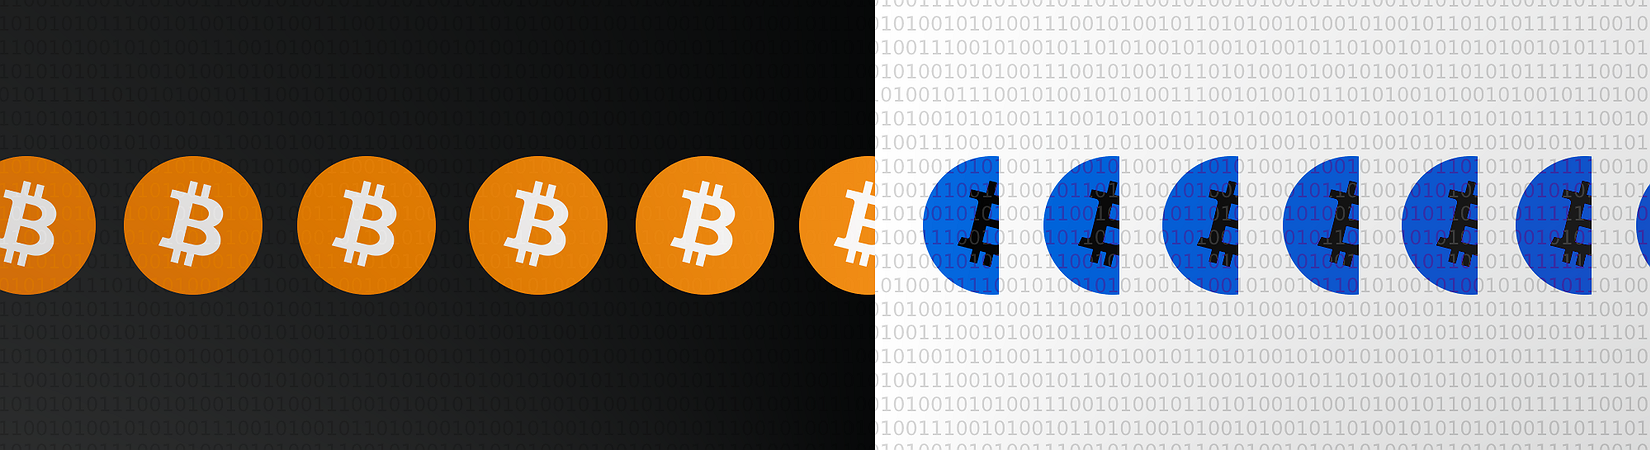 august 2021 cryptocurrency mining